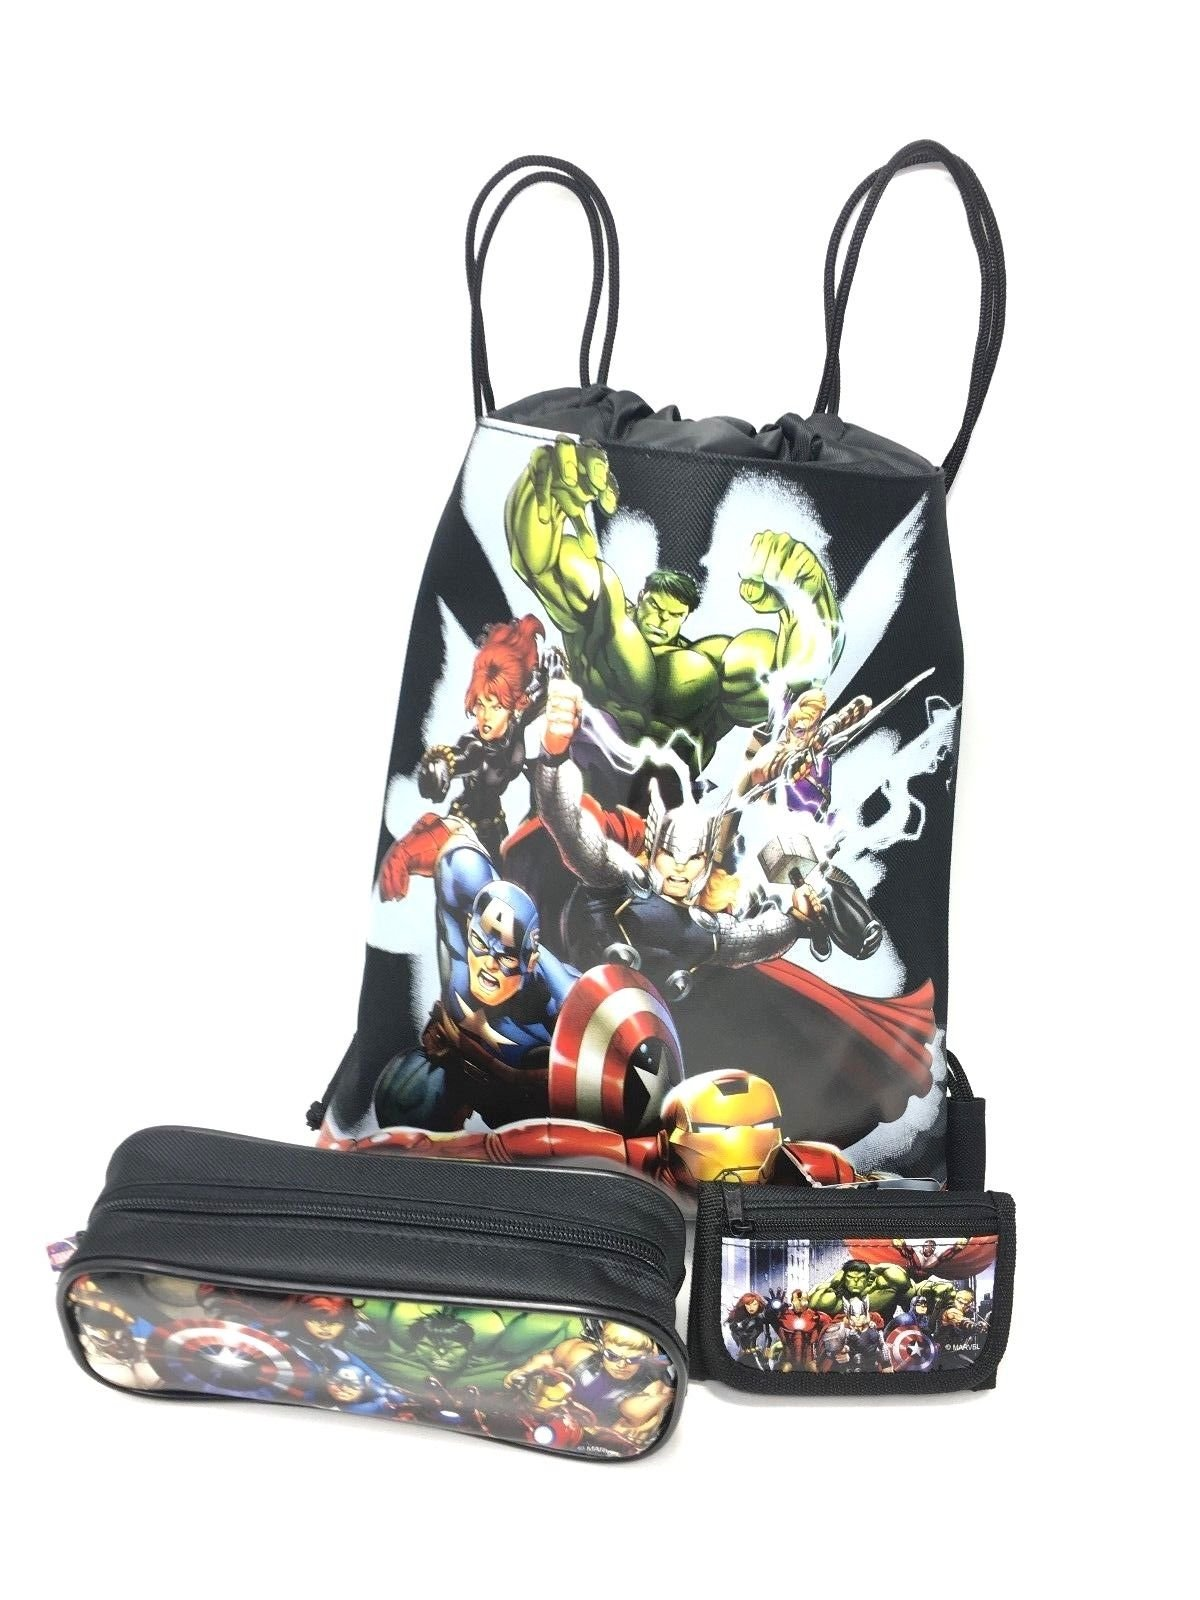 Marvel Avengers Character Authentic Licensed Wallet, Pencil Case, Sling Backpack Bag-3 Items